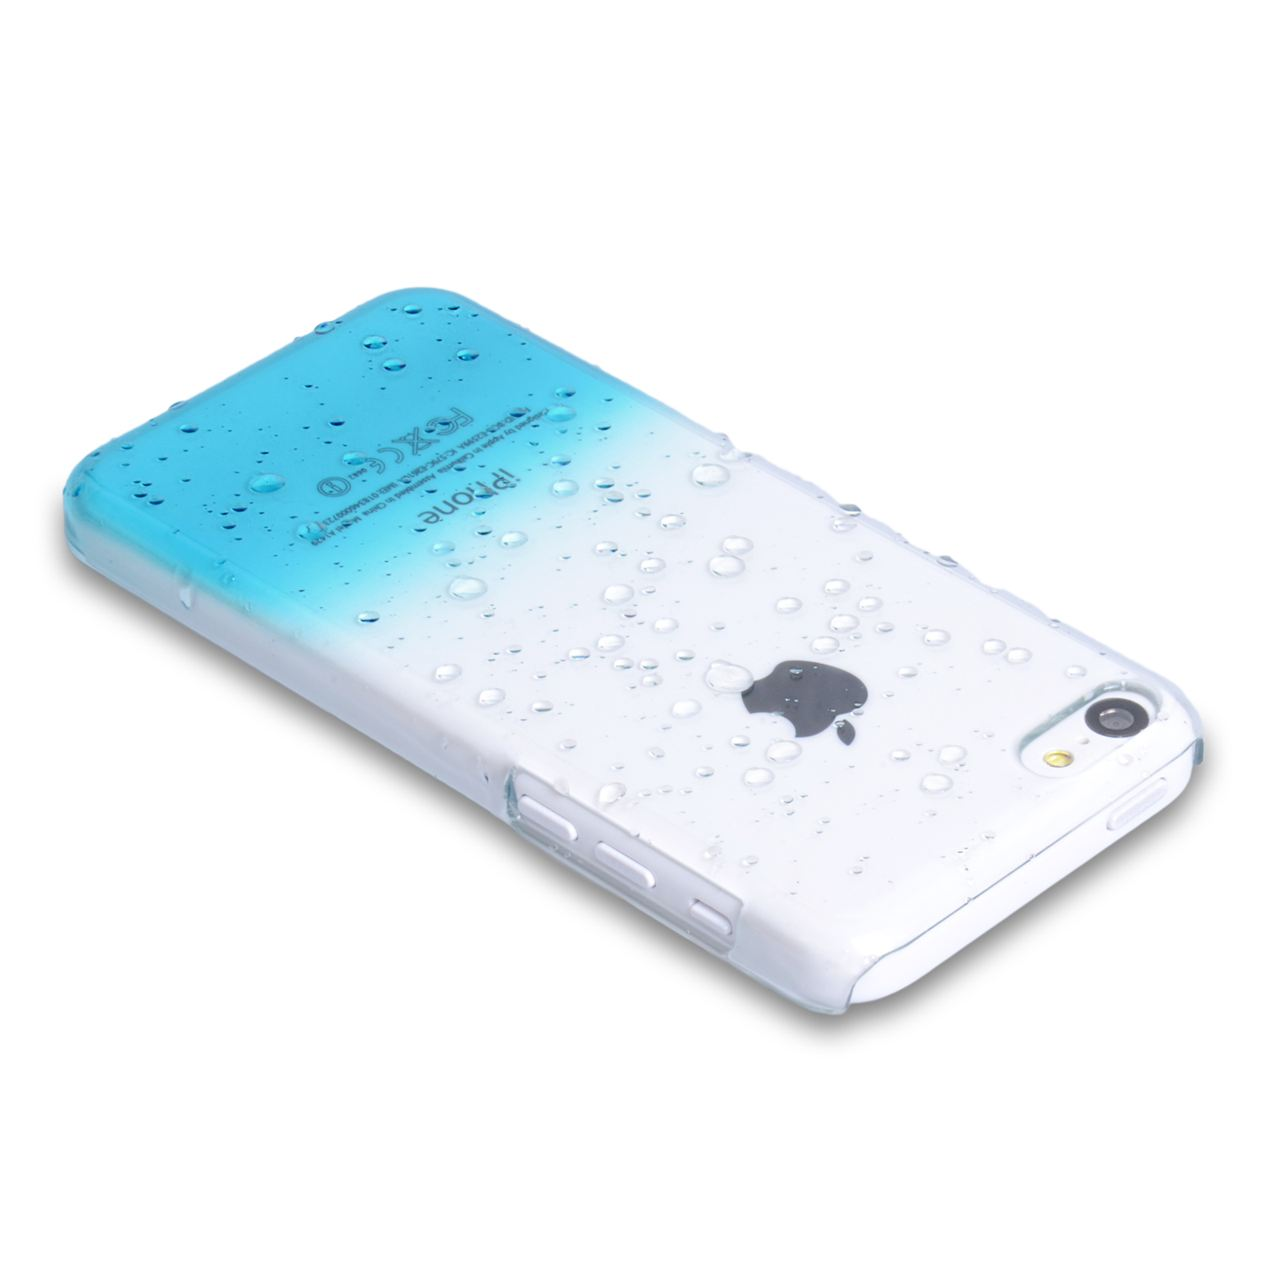 YouSave Accessories iPhone 5C Raindrop Hard Case - Blue